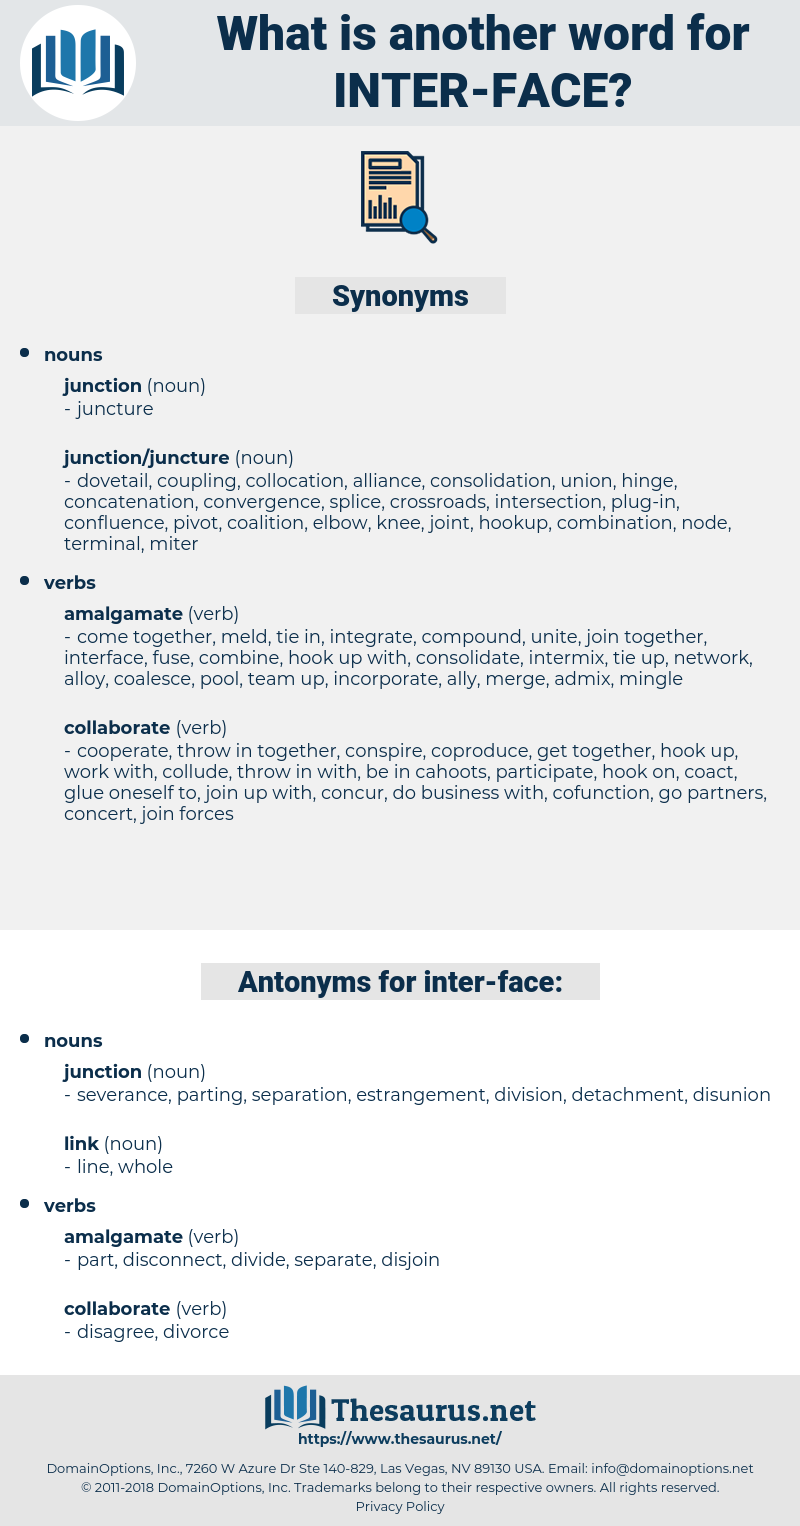 inter-face, synonym inter-face, another word for inter-face, words like inter-face, thesaurus inter-face